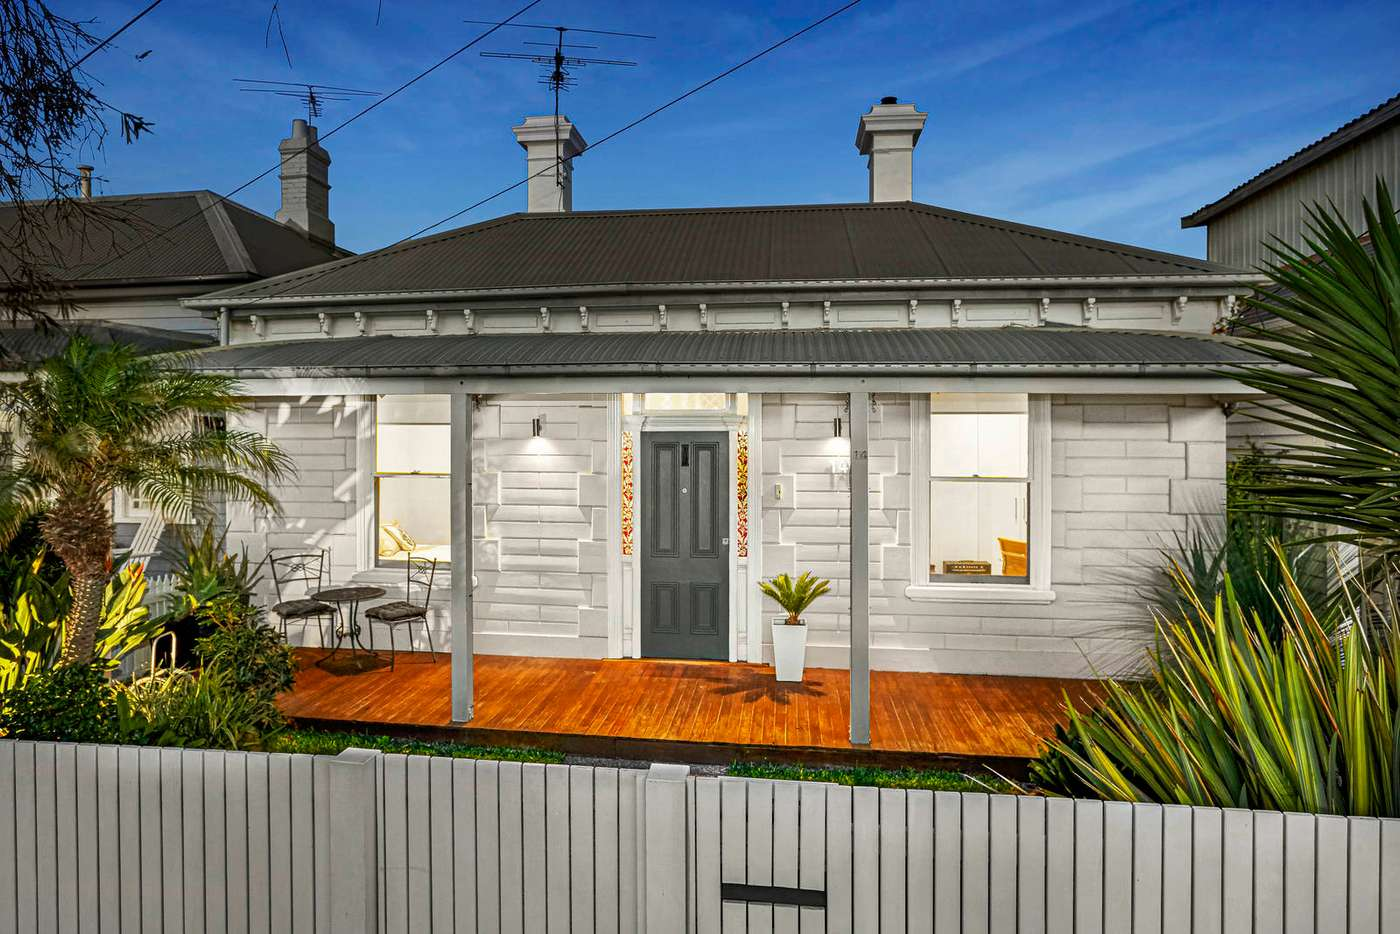 Main view of Homely house listing, 14 Forster Street, Williamstown VIC 3016